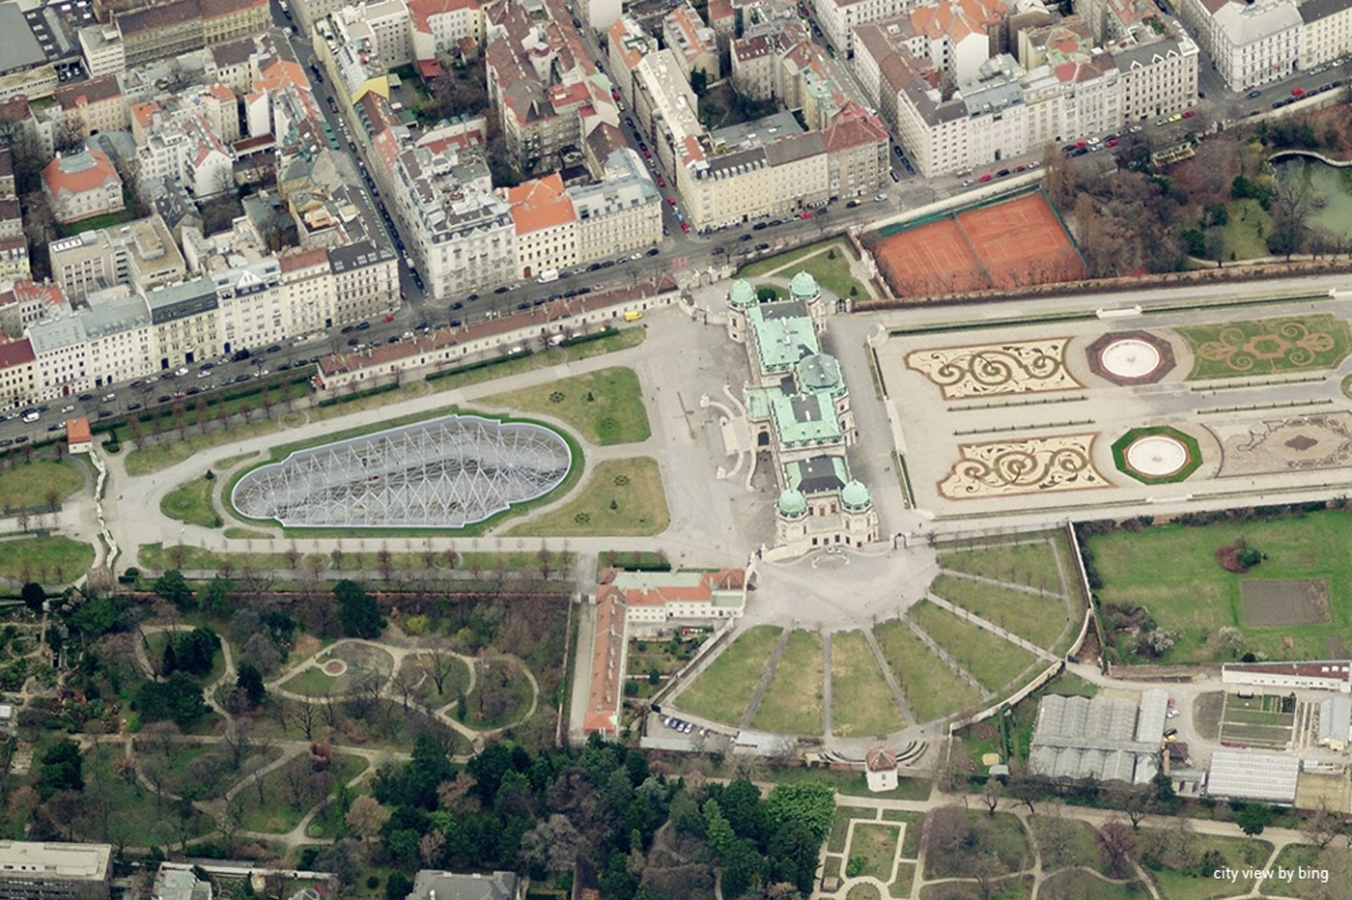 GMMK  Gert M. MAYR-KEBER ZT-GmbH Belvedere Extension 2006 city image by bing